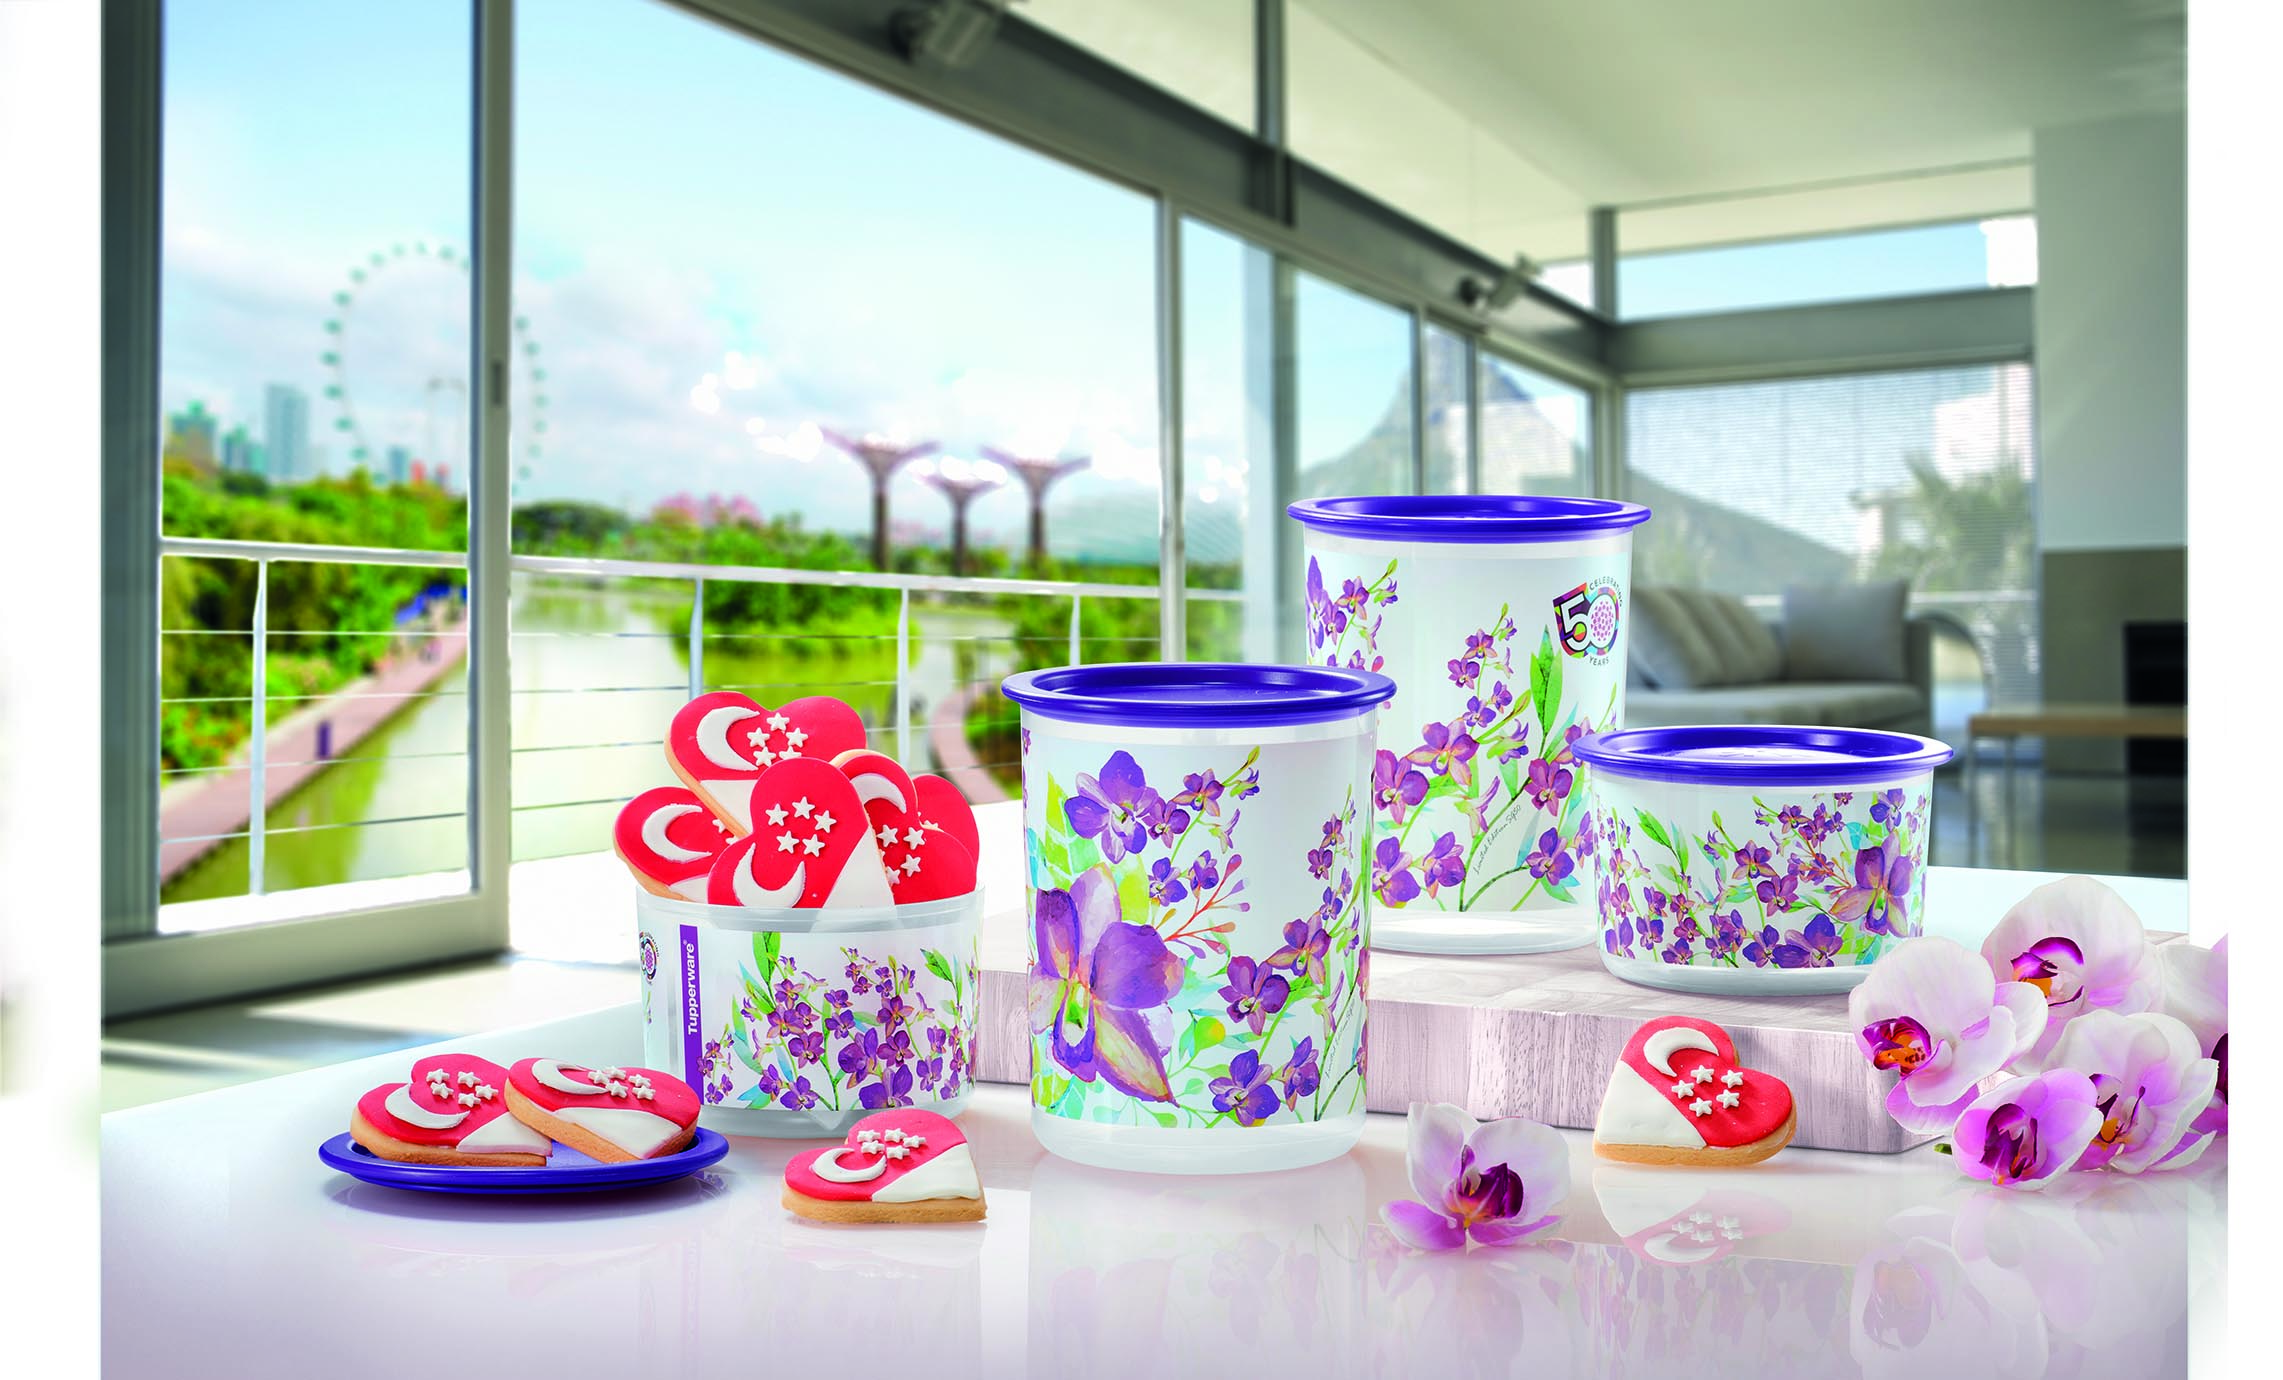 3-30 jun 2015: watson online free limited edition tupperware.